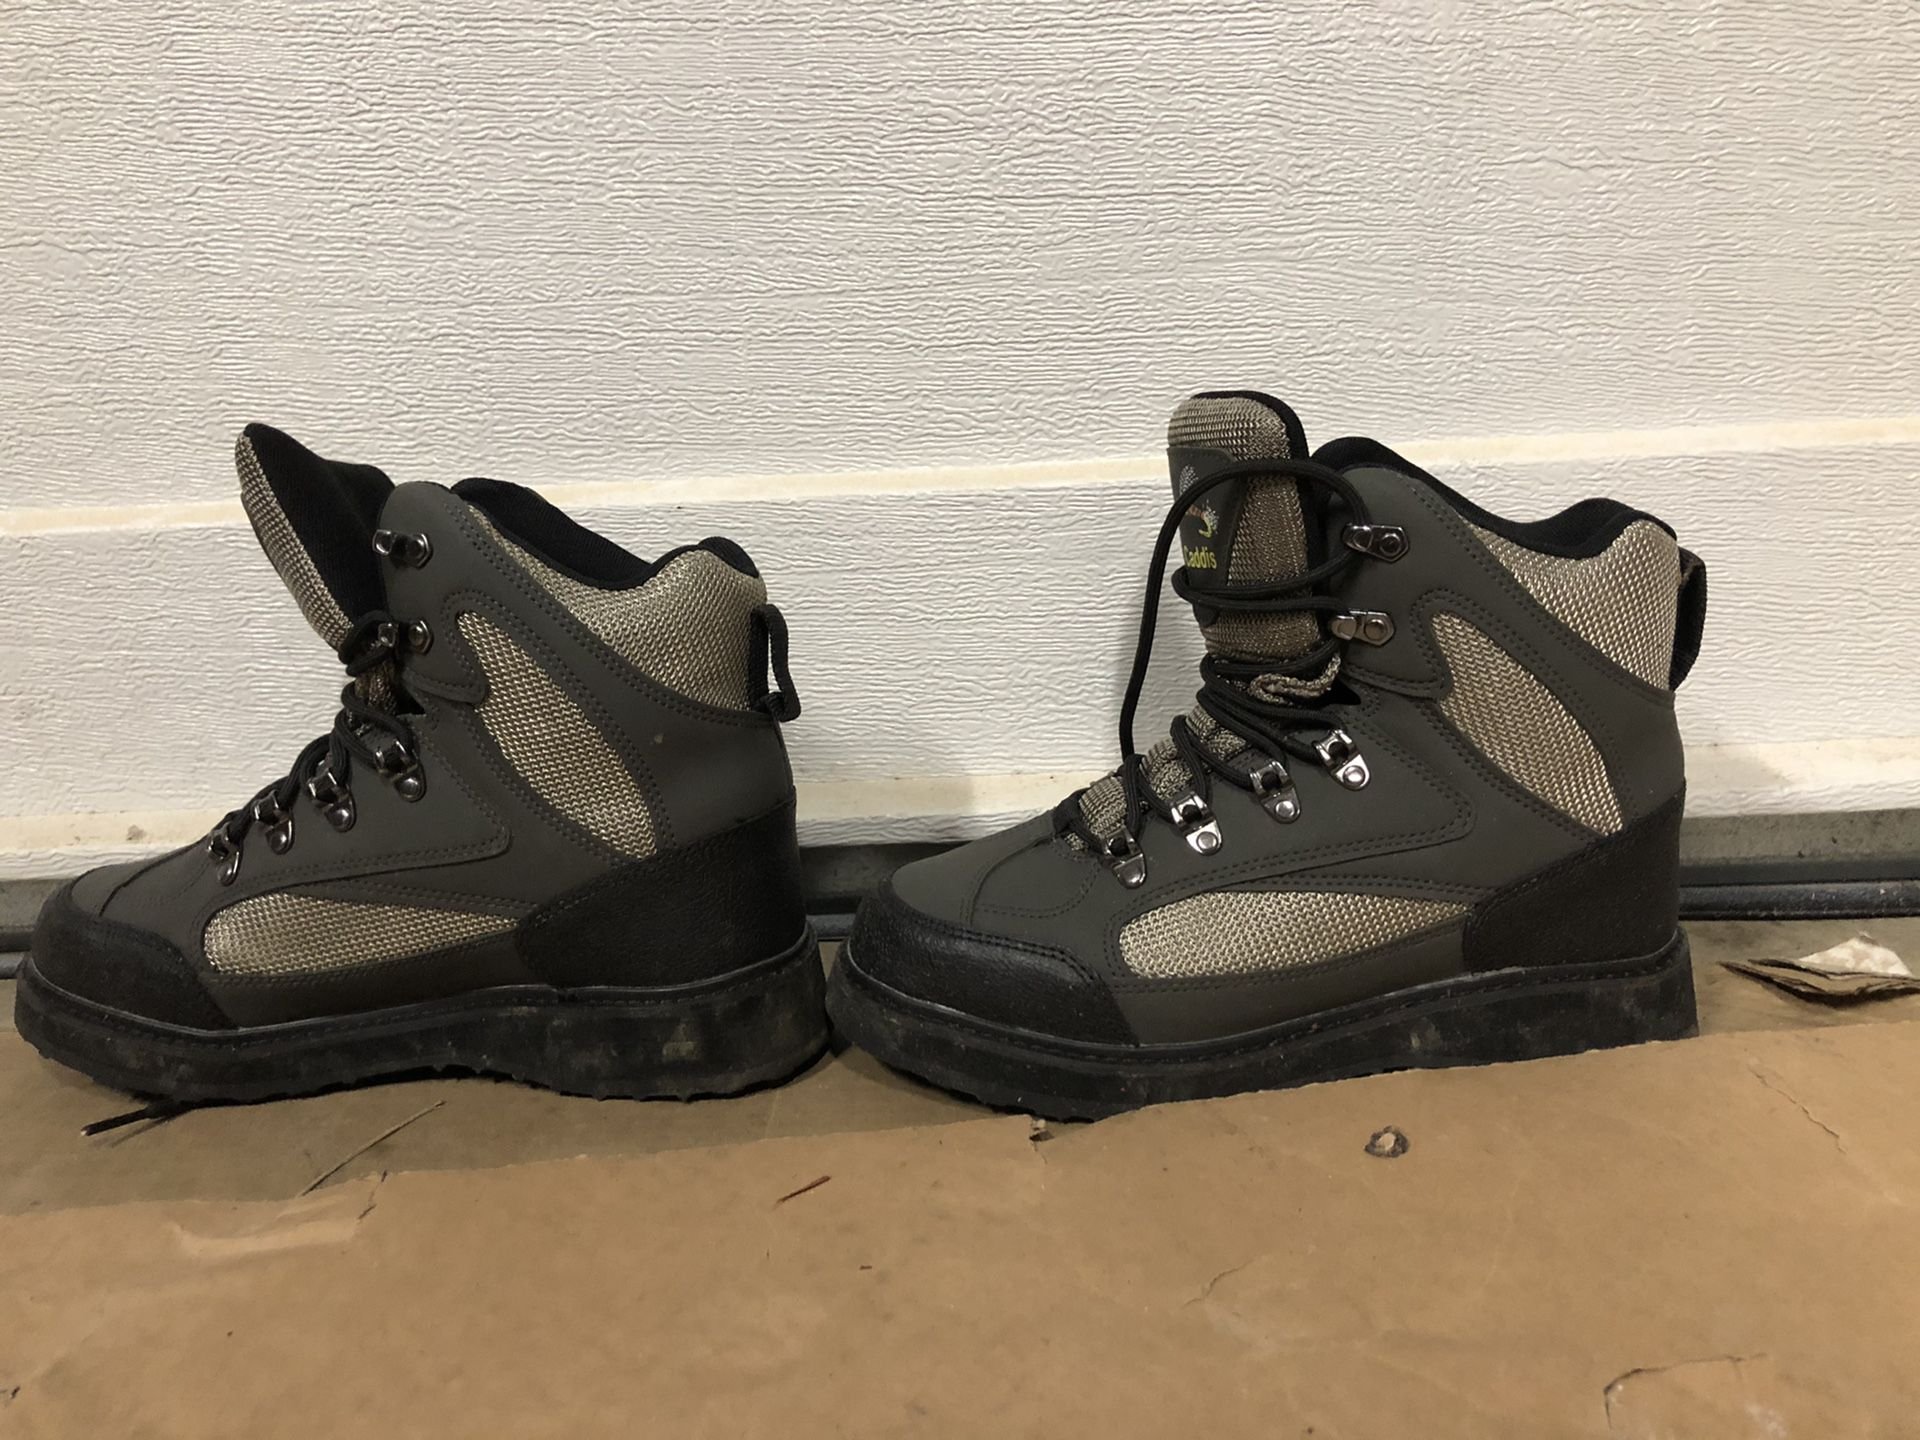 Size 8 Caddis Wading Boots Brand New